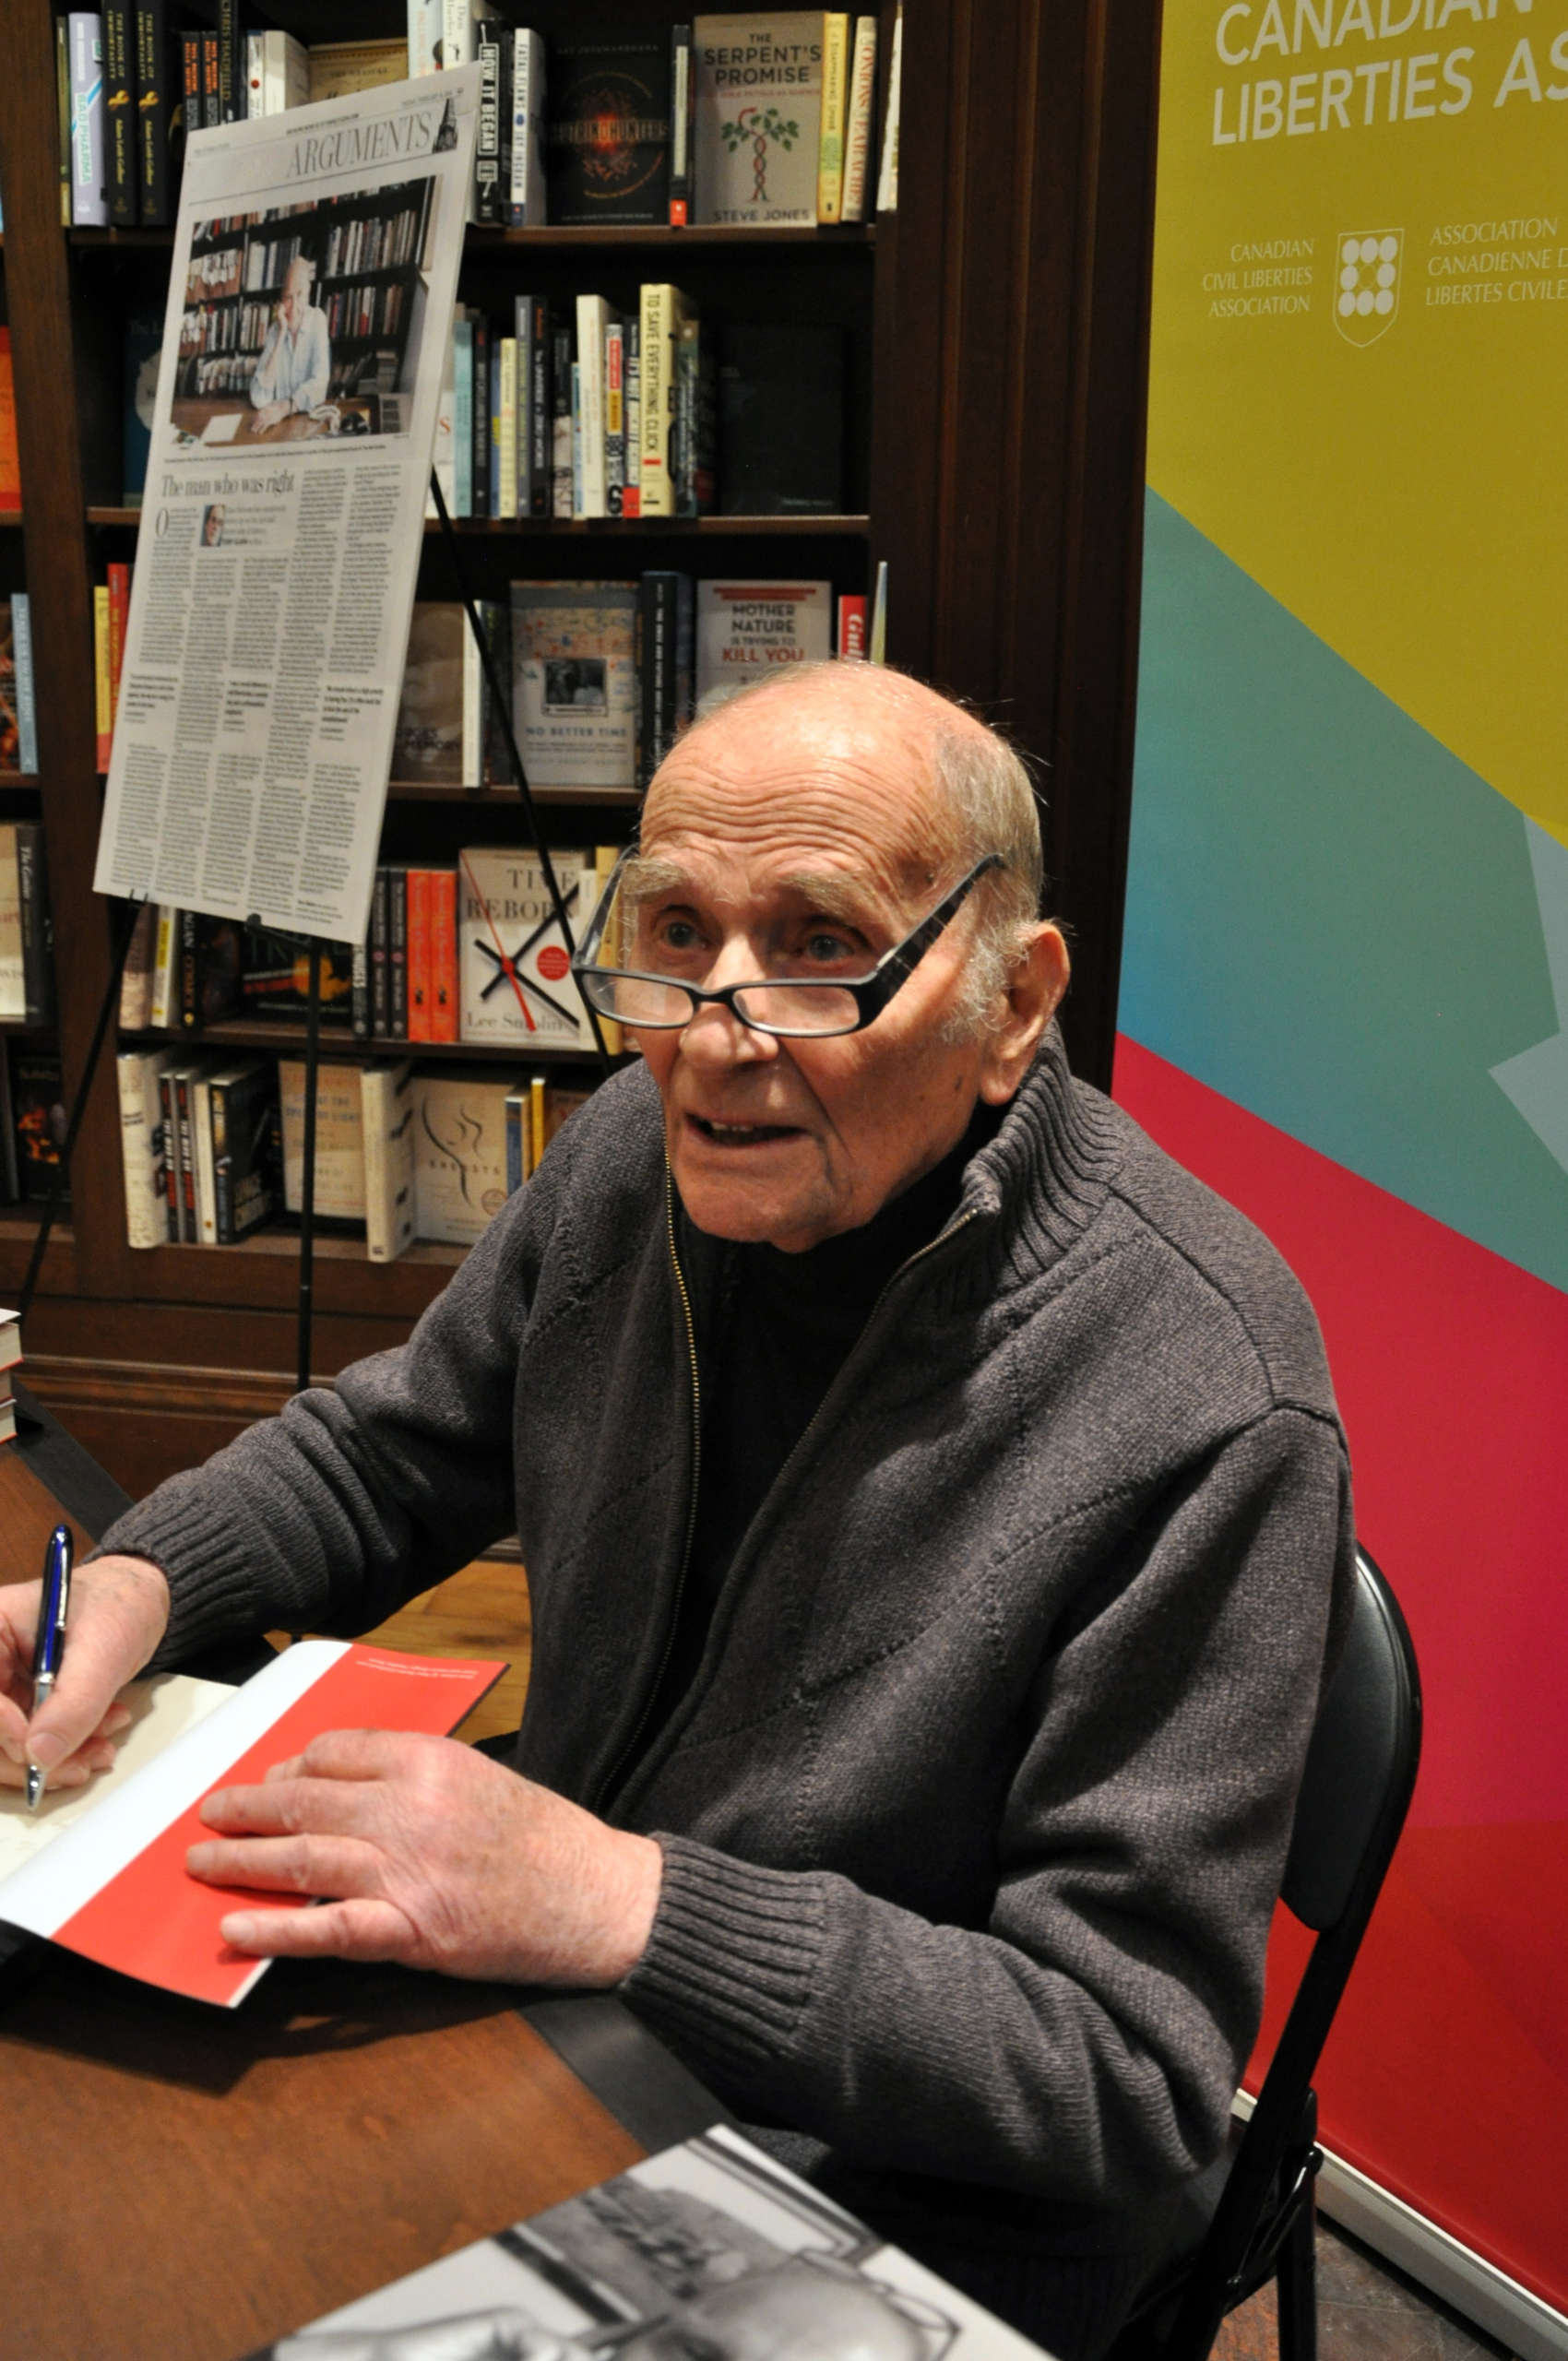 A Alan Borovoy signs books at a table at Ben McNalley's book store. He is wearing glasses and a grey zip up sweater. In the background are a poster of a feature on him in the Toronto Star, and a stand-up banner for the Canadian Civil Liberties Association.